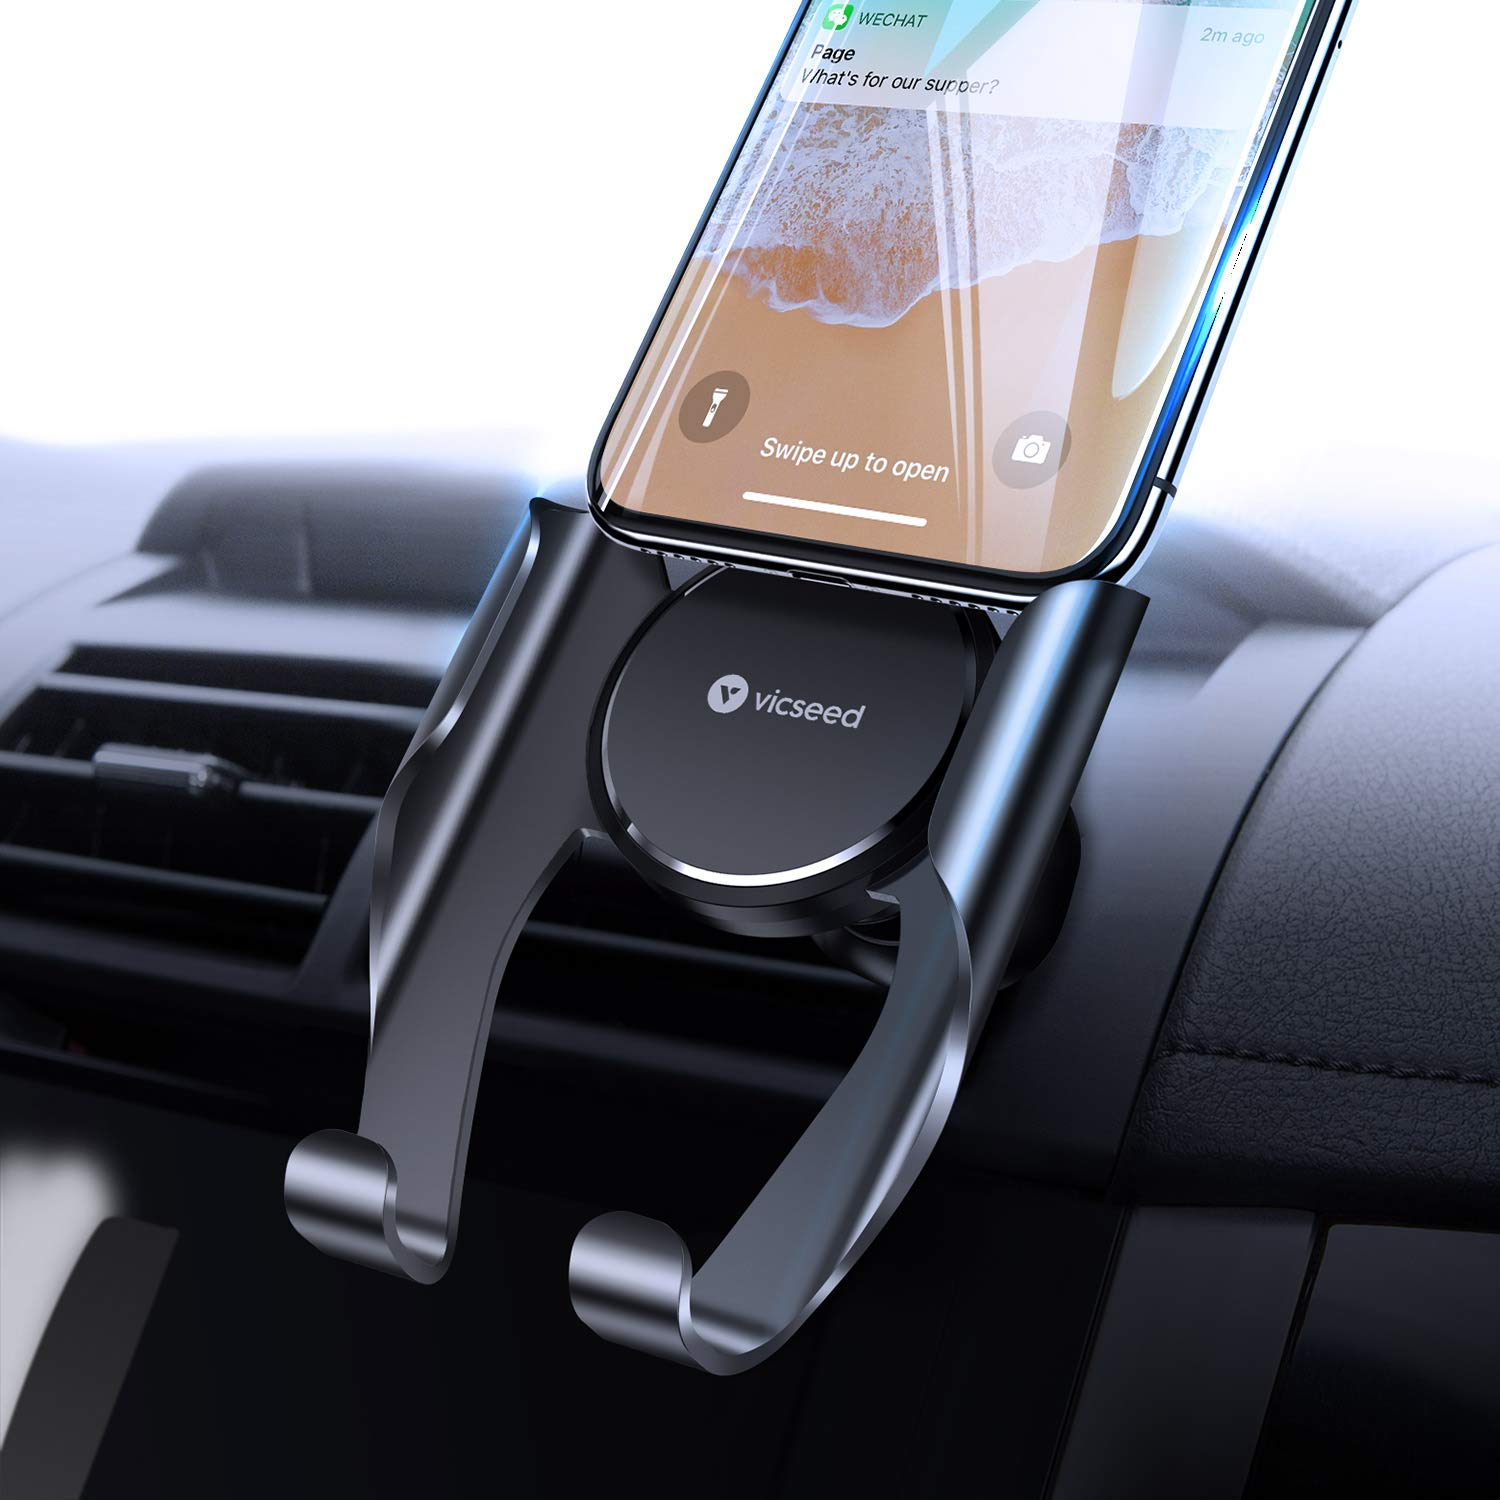 VICSEED Car Phone Mount, Air Vent Phone Holder for Car, Handsfree Cell Phone Car Mount Compatible iPhone 11 Pro Max XR Xs Max Xs X 8 7 6 Plus, Compatible Samsung Note 10 S10+ S10 S9 S8 LG Google Etc. by VICSEED